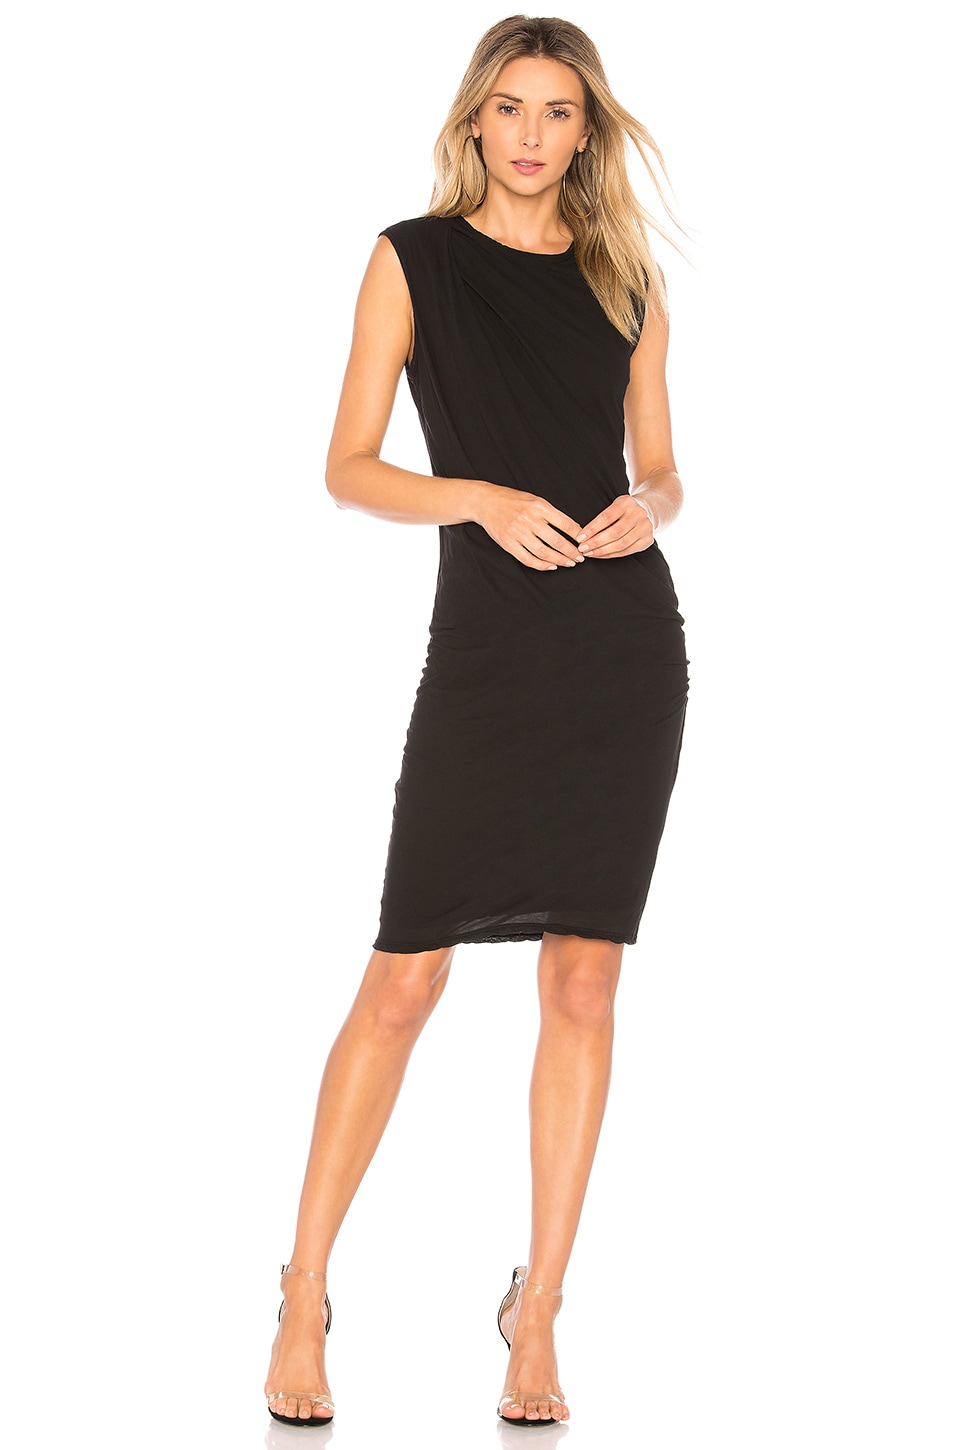 Skinny Tucked Dress in Black. - size 1 (XS/S) (also in 0 (XXS/XS),2 (S/M),3 (M/L)) James Perse